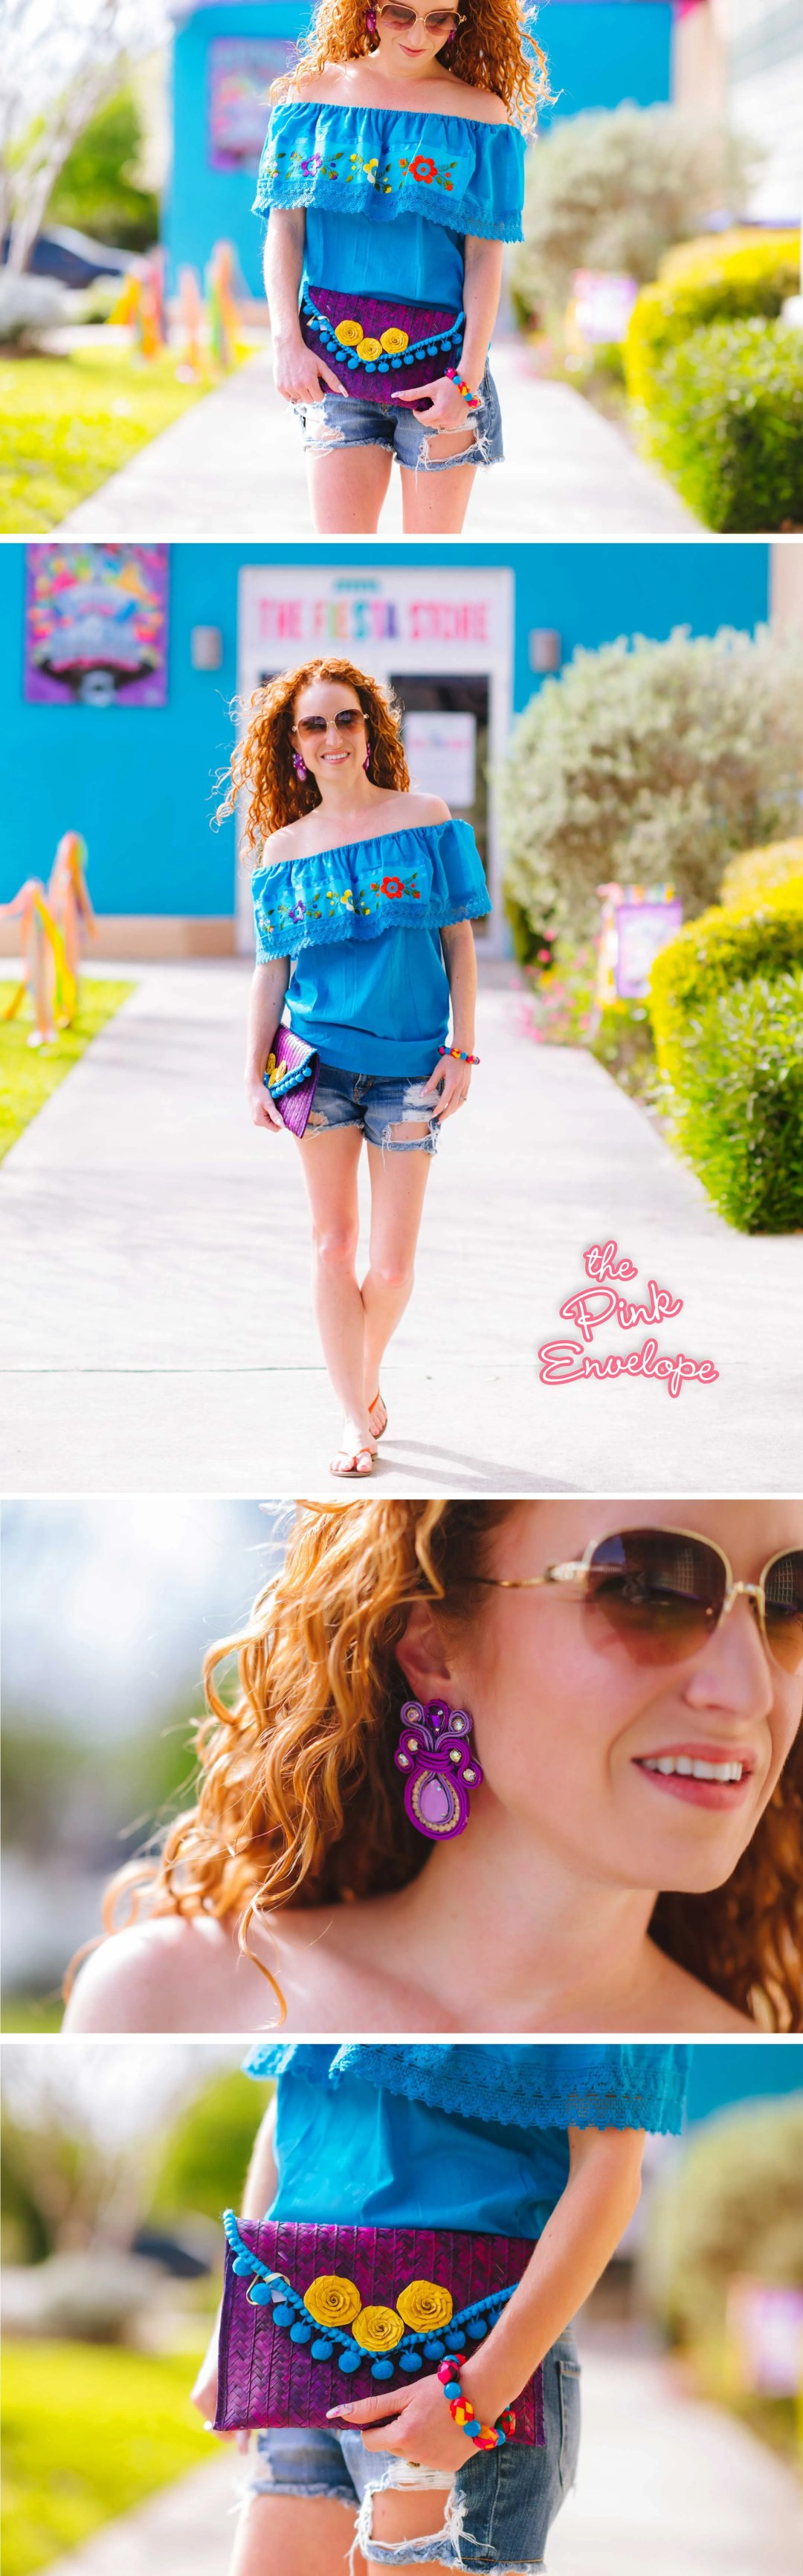 Blue Fiesta Outfit Ideas for San Antonio Fiest Fashion Haul - My Outfit Picks - The Pink Envelope #fiesta #fashion